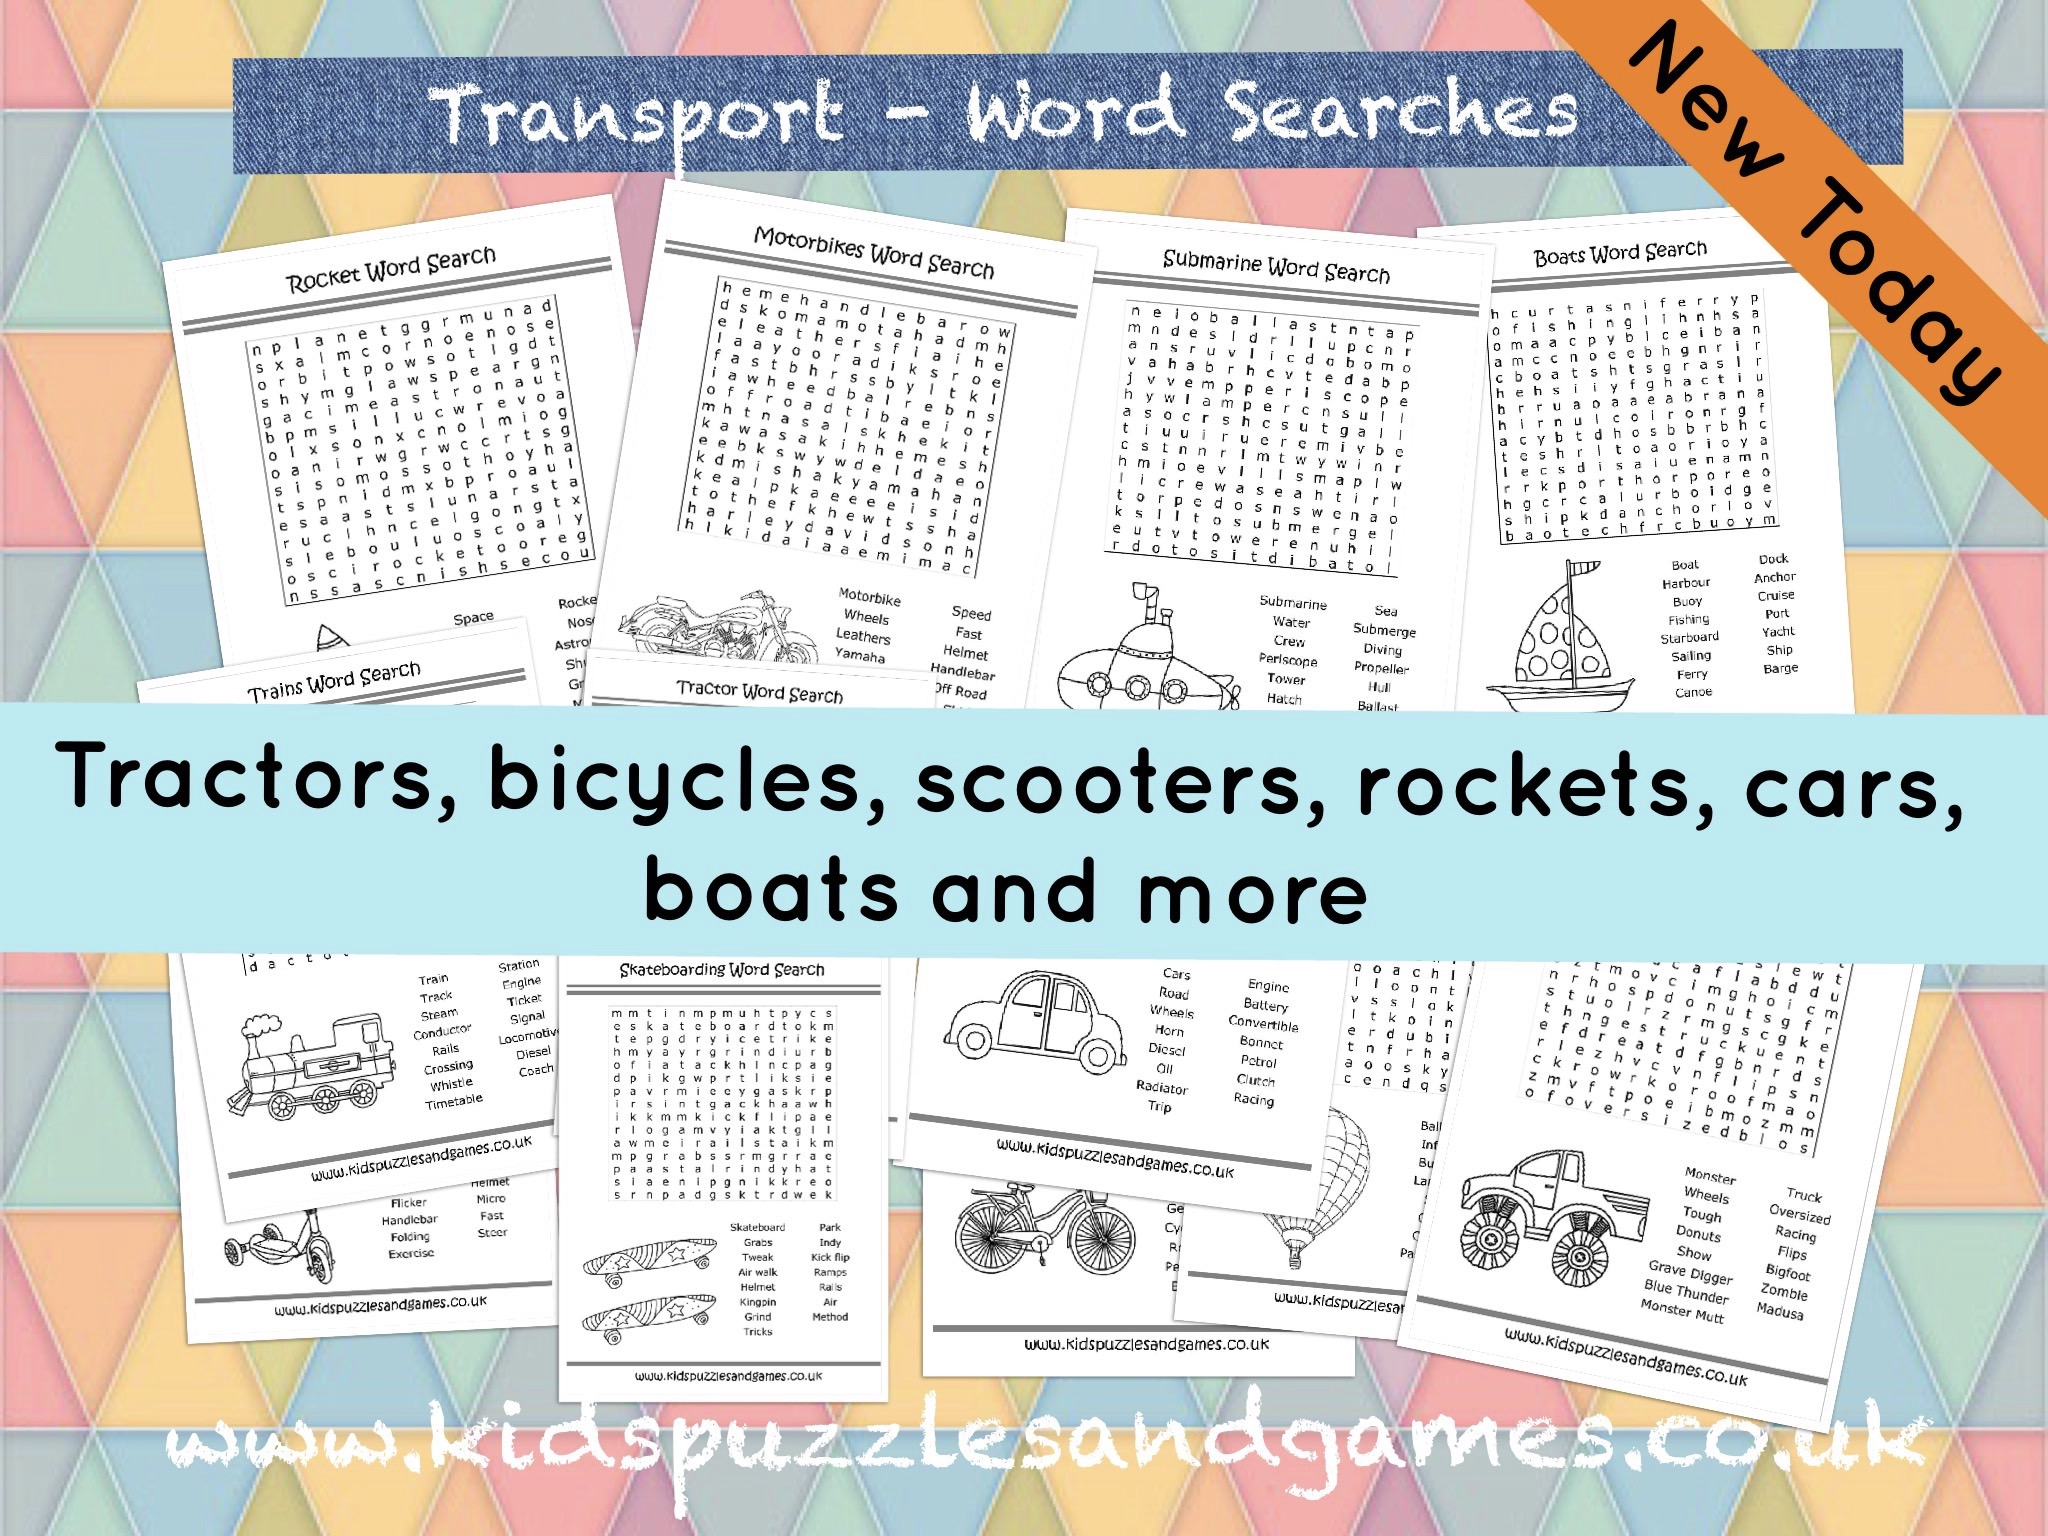 Transport Word Searches Added Today